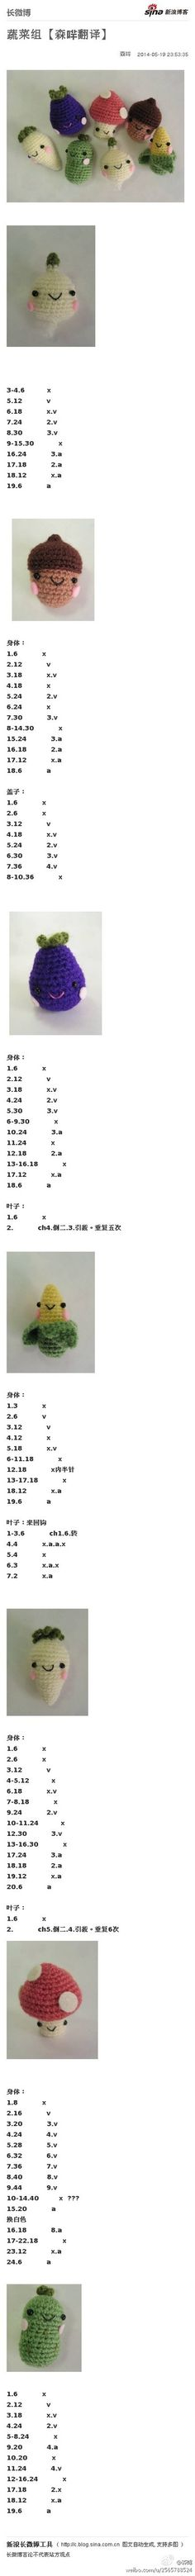 堆糖 发现生活_收集美好_分享图片 Crochet Fruit, Crochet Food, Crochet Motif, Crochet Dolls, Crochet Designs, Crochet Crafts, Crochet Yarn, Crochet Flowers, Crochet Patterns